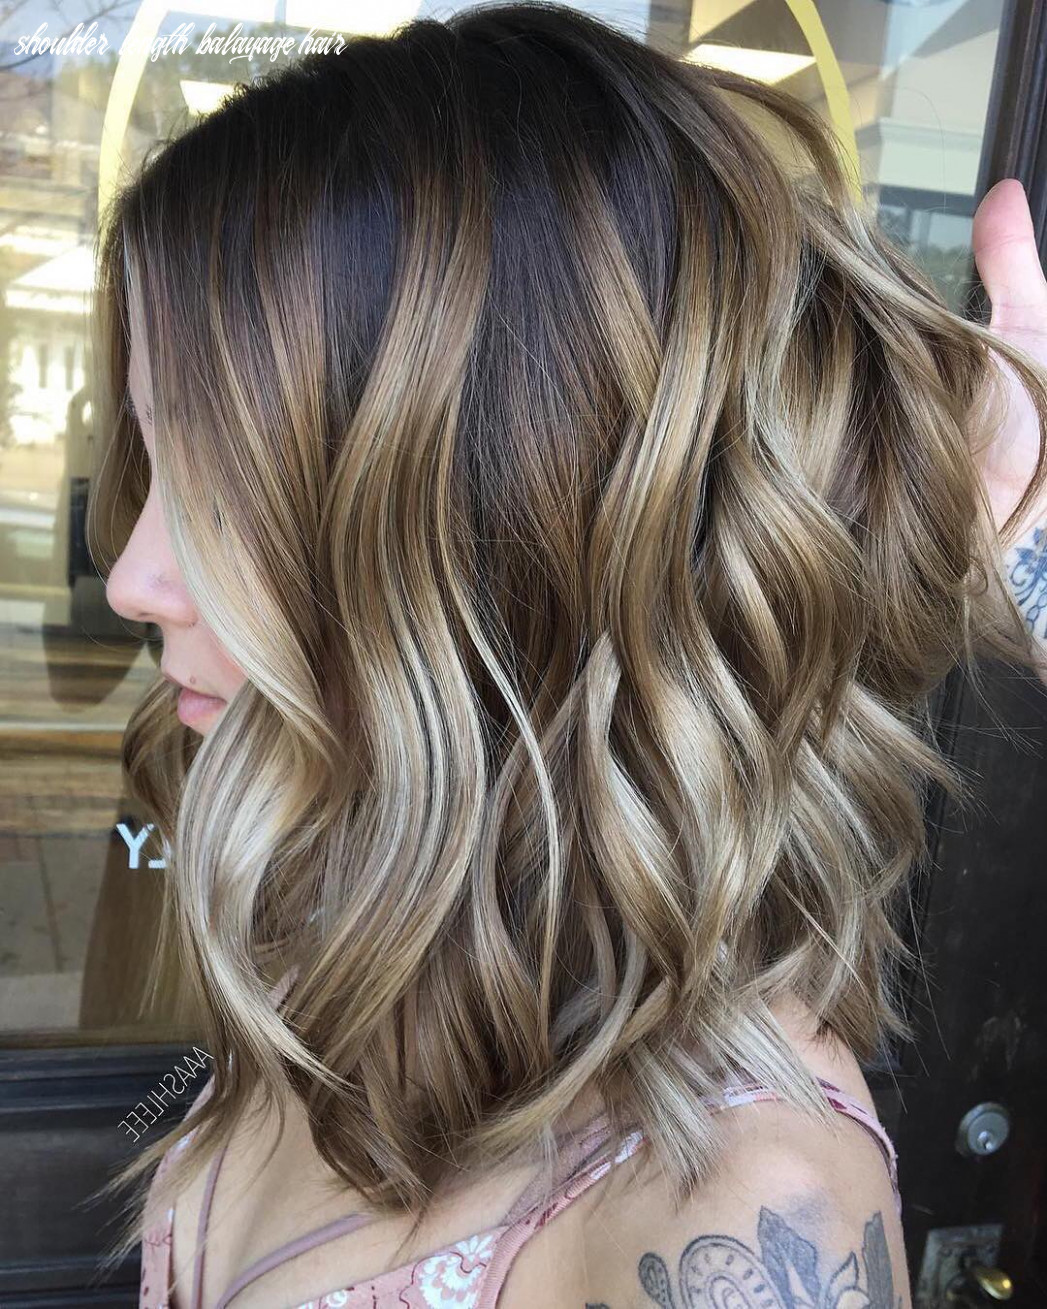 12 ombre balayage hairstyles for medium length hair, hair color 12 shoulder length balayage hair